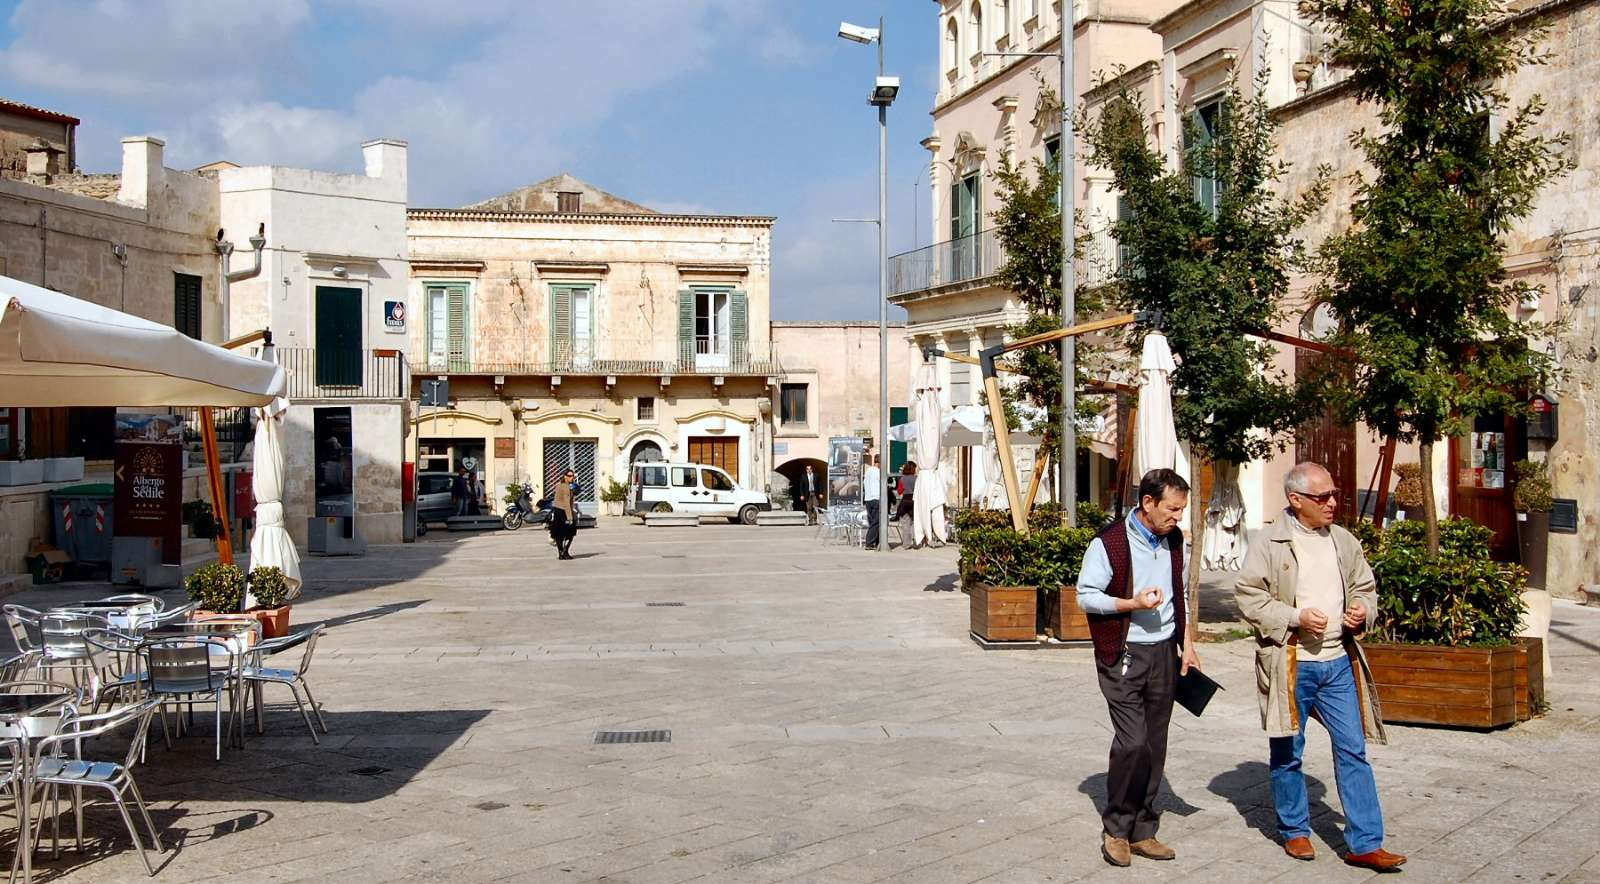 Matera is full of cozy squares. Here is Piazza Sedile